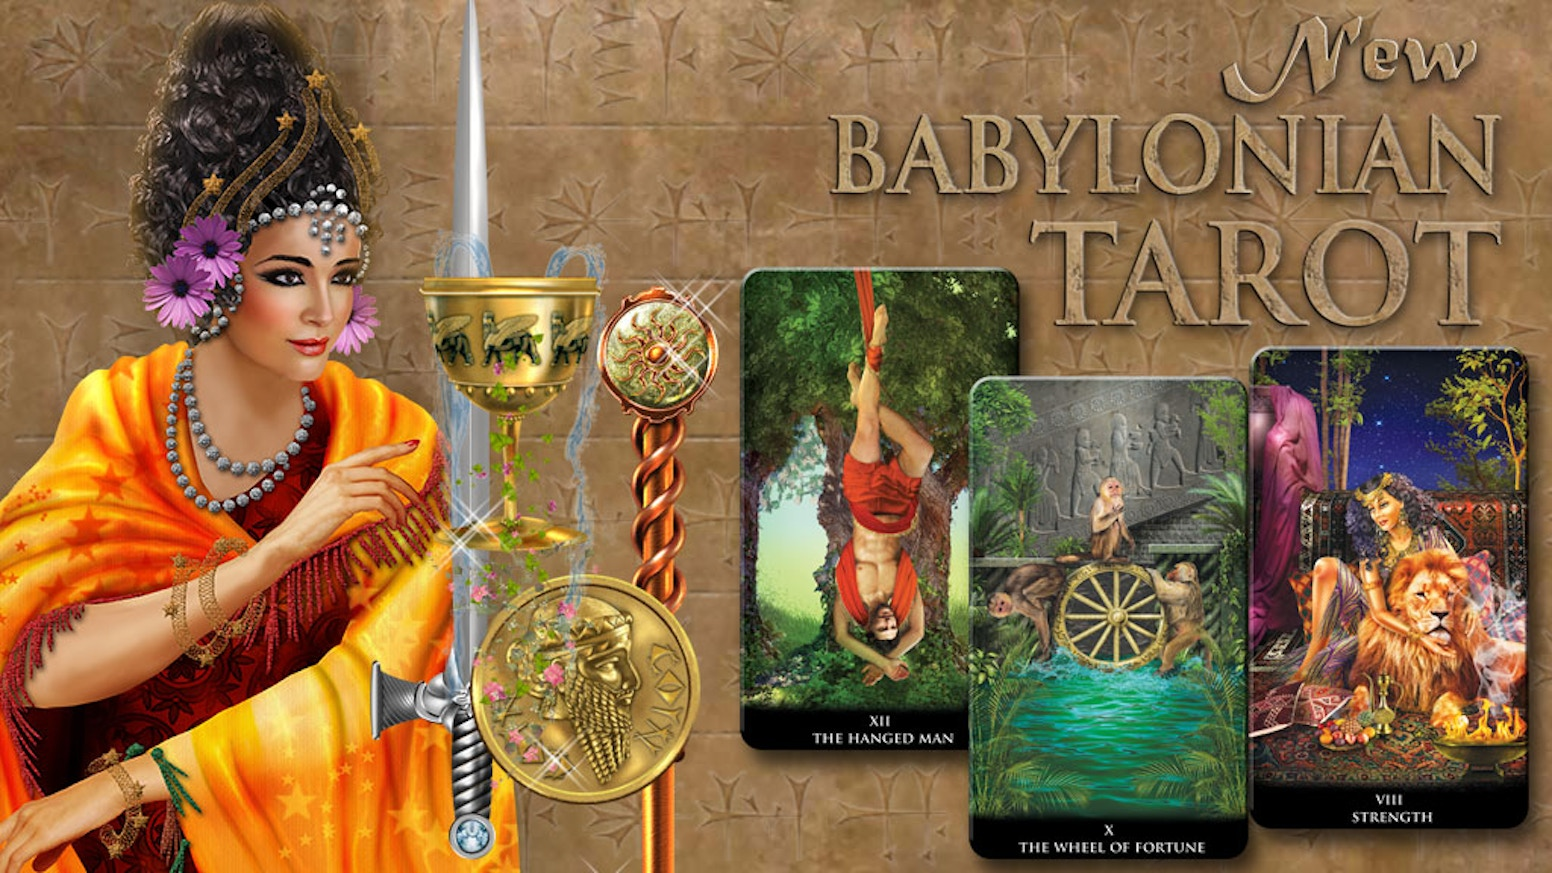 An art-rich tarot deck bringing back Babylonian magical divination ways and rituals